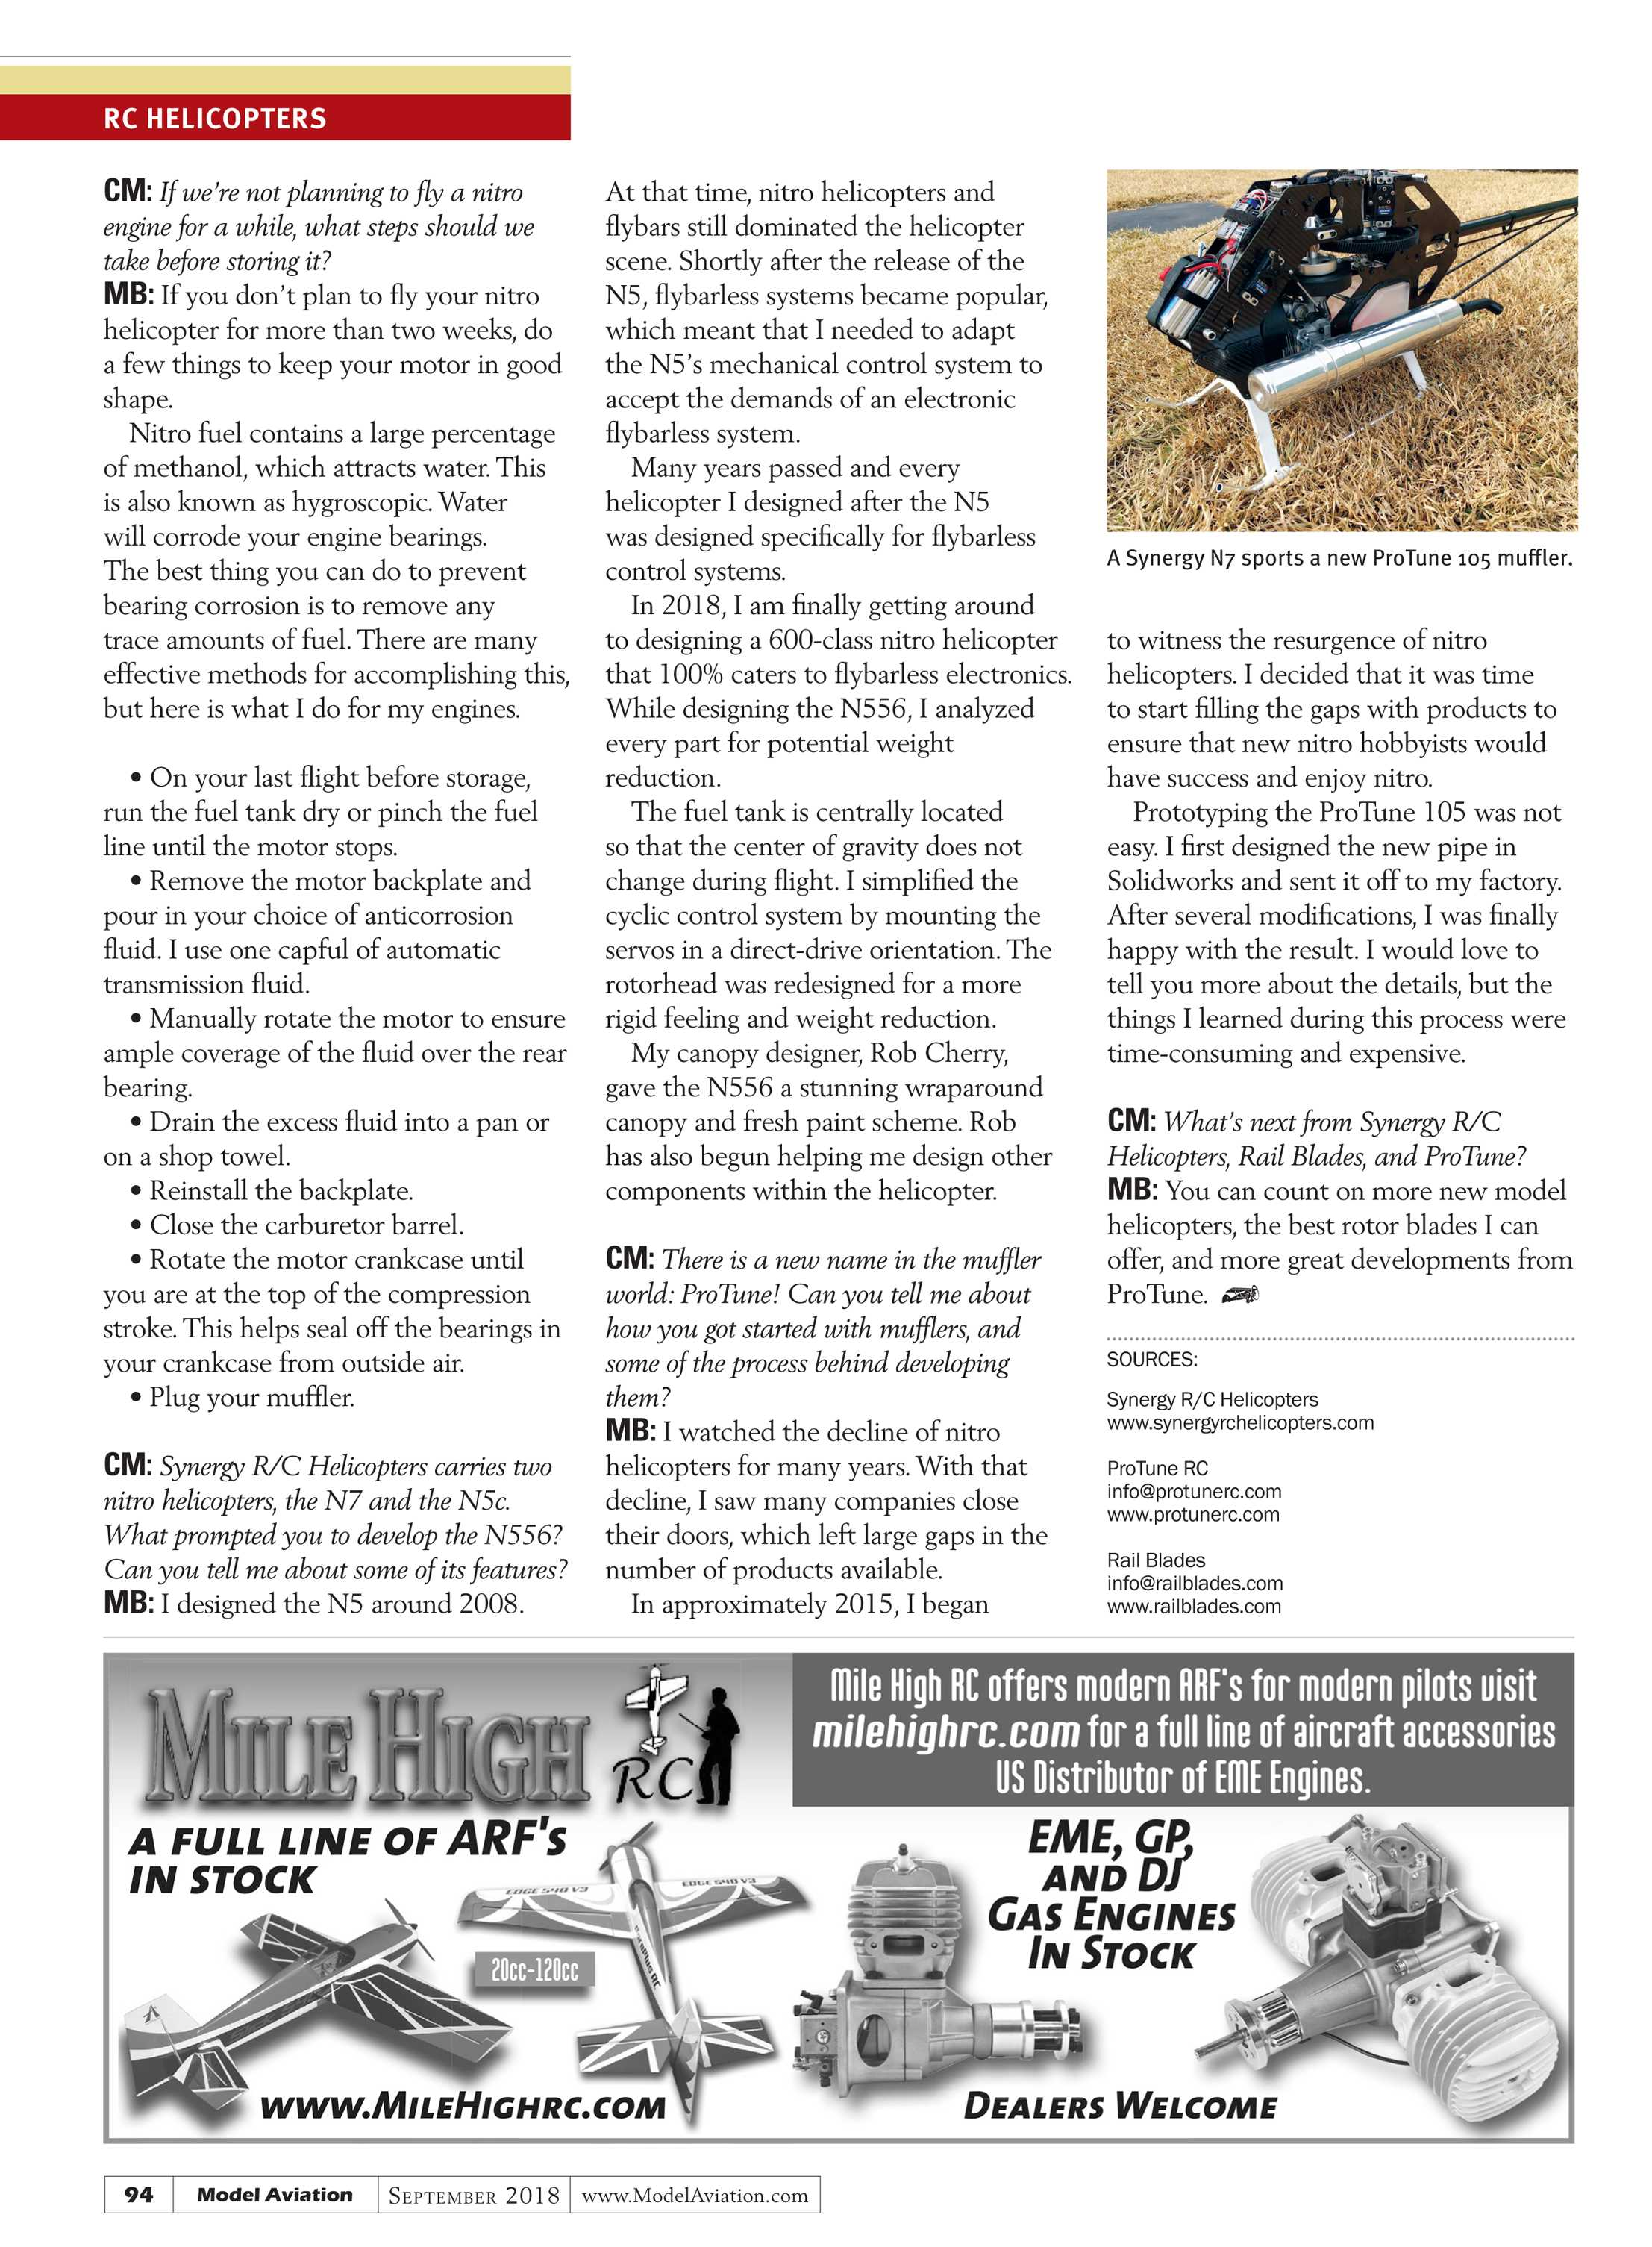 Model Aviation - September 2018 - page 95